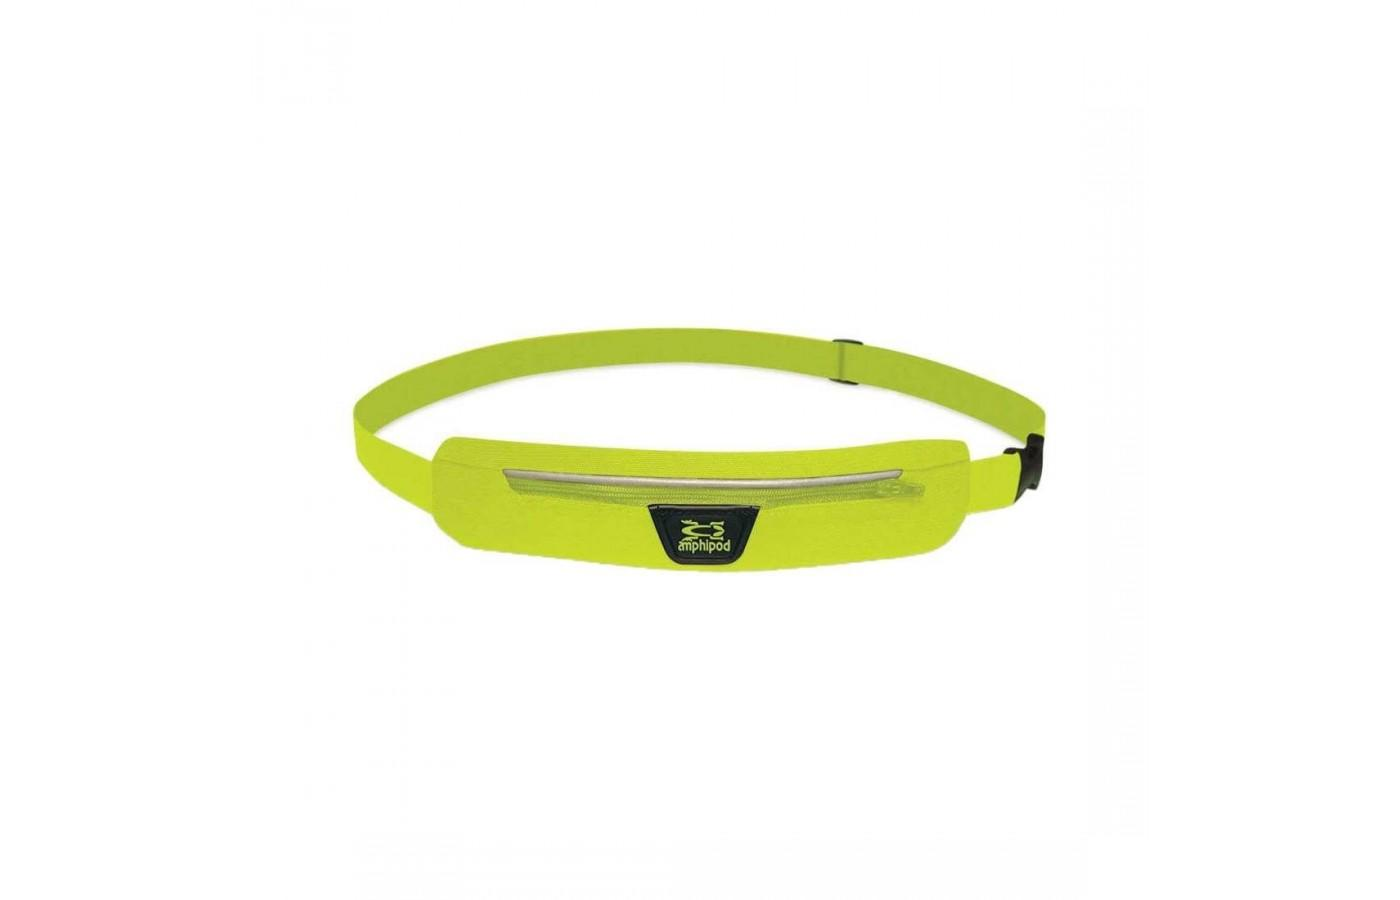 The Amphipod Airflow Microstretch Belt's pocket has a removable divider